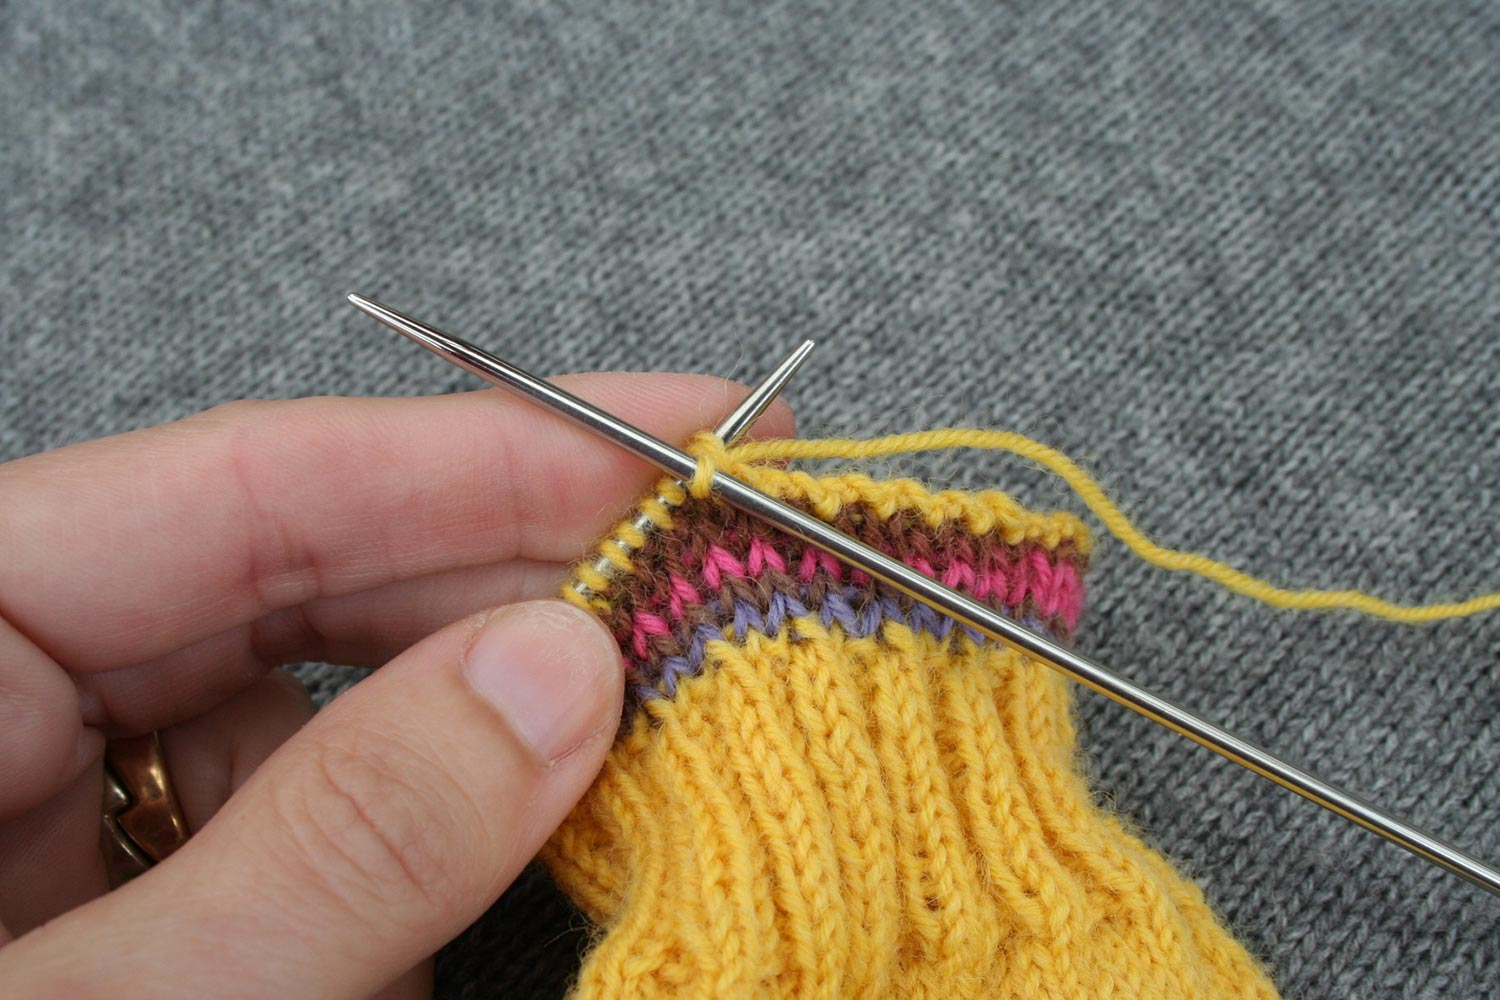 Bind off being worked on a sock cuff with right needle performing a knit two together (k2tog).